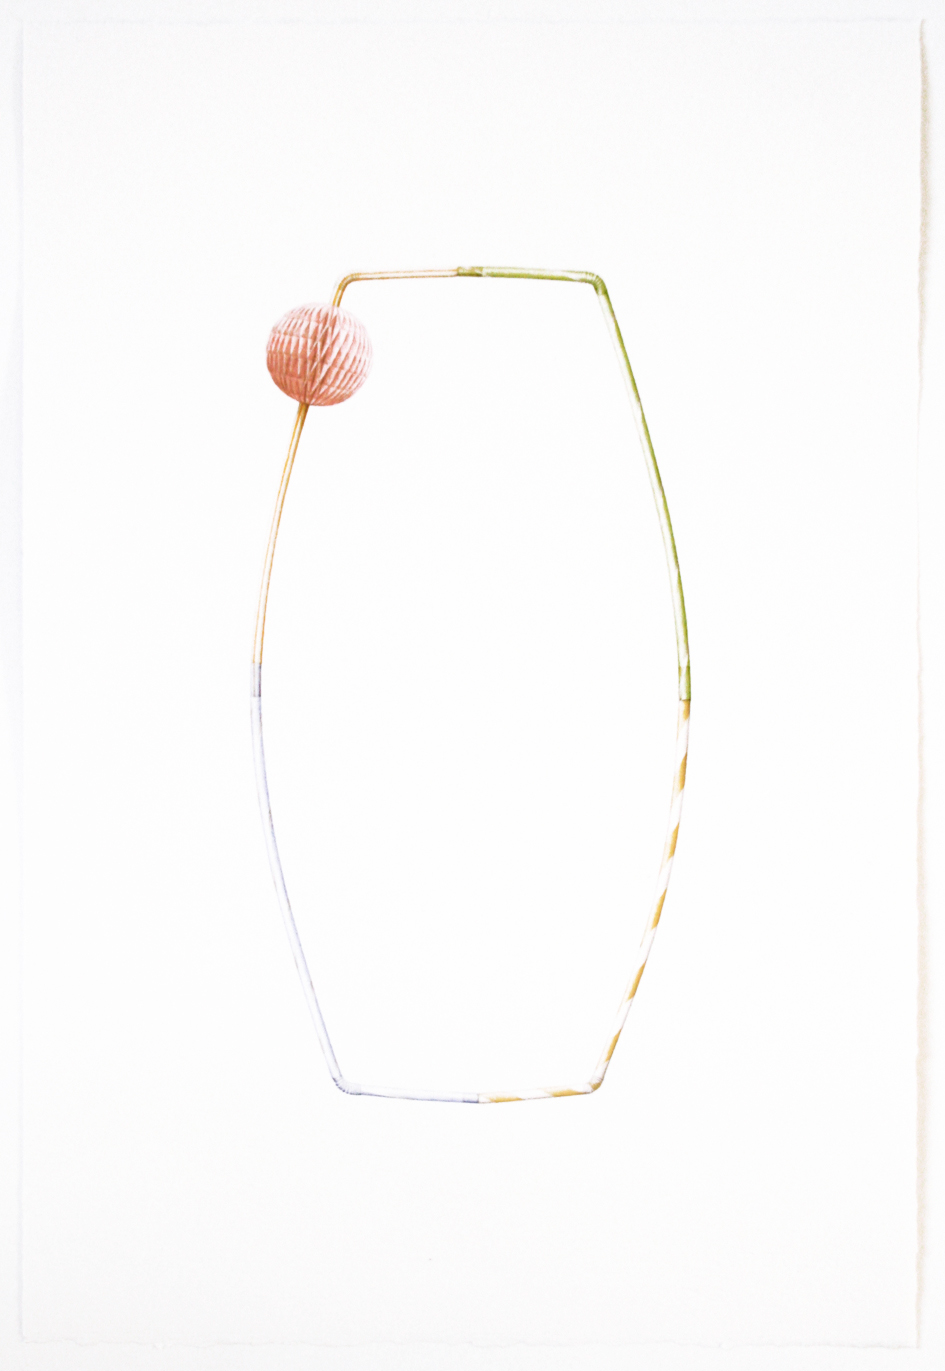 © LARS HINRICHS, UNTITLED (STRAW RING), 2016, AQUARELLE, 56 X 38 CM